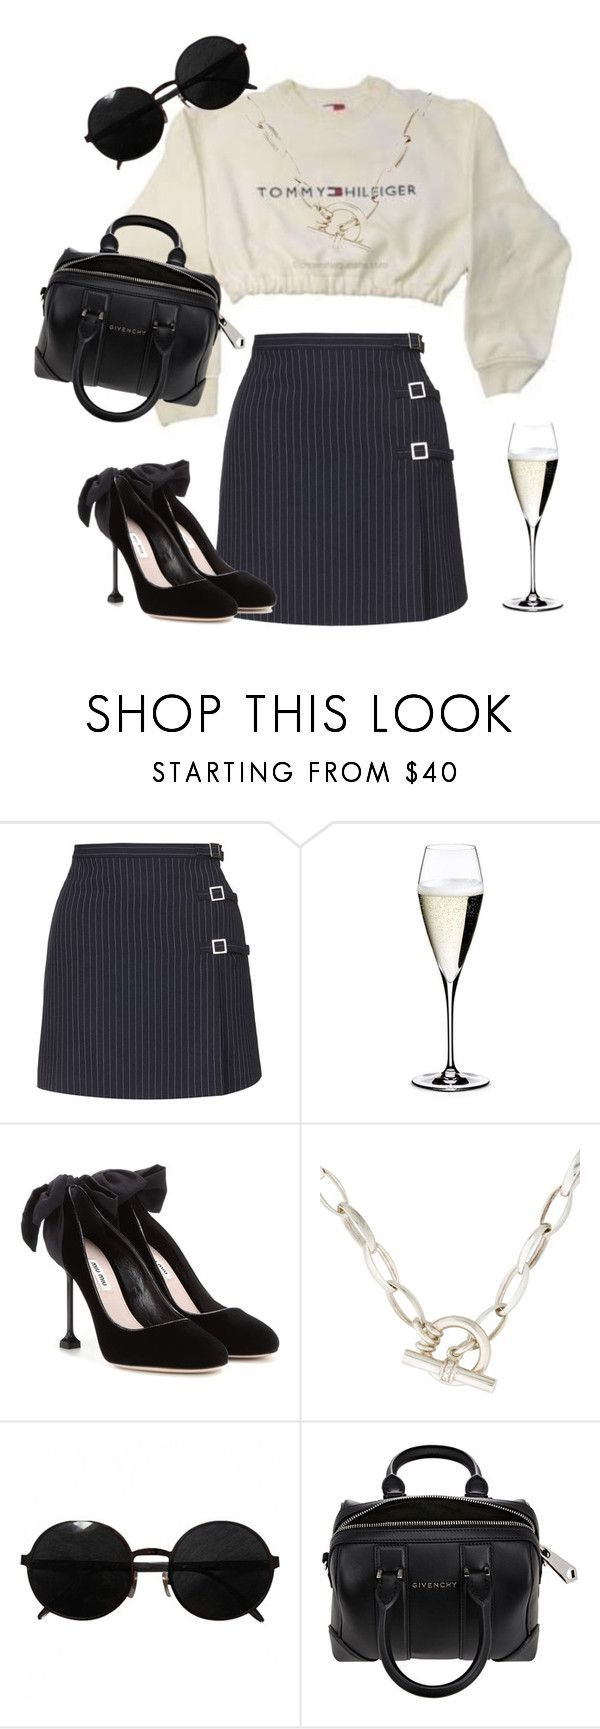 """""""Untitled #624"""" by chookadee ❤ liked on Polyvore featuring Topshop, Riedel, Miu Miu, Slane, Versace and Givenchy"""